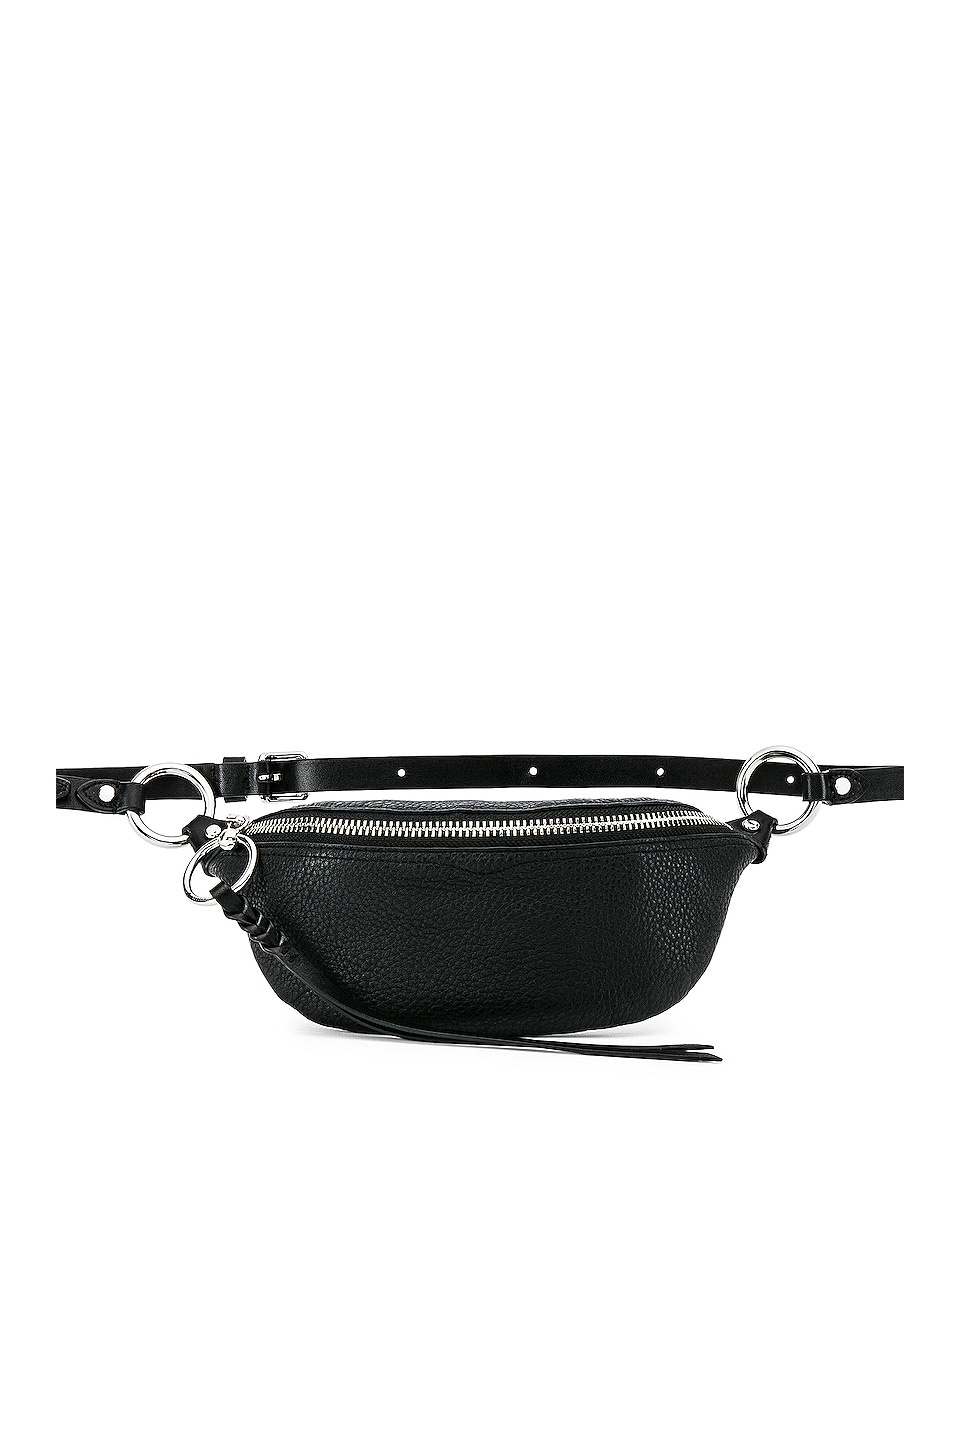 Rebecca Minkoff Bree Mini Belt Bag in Black